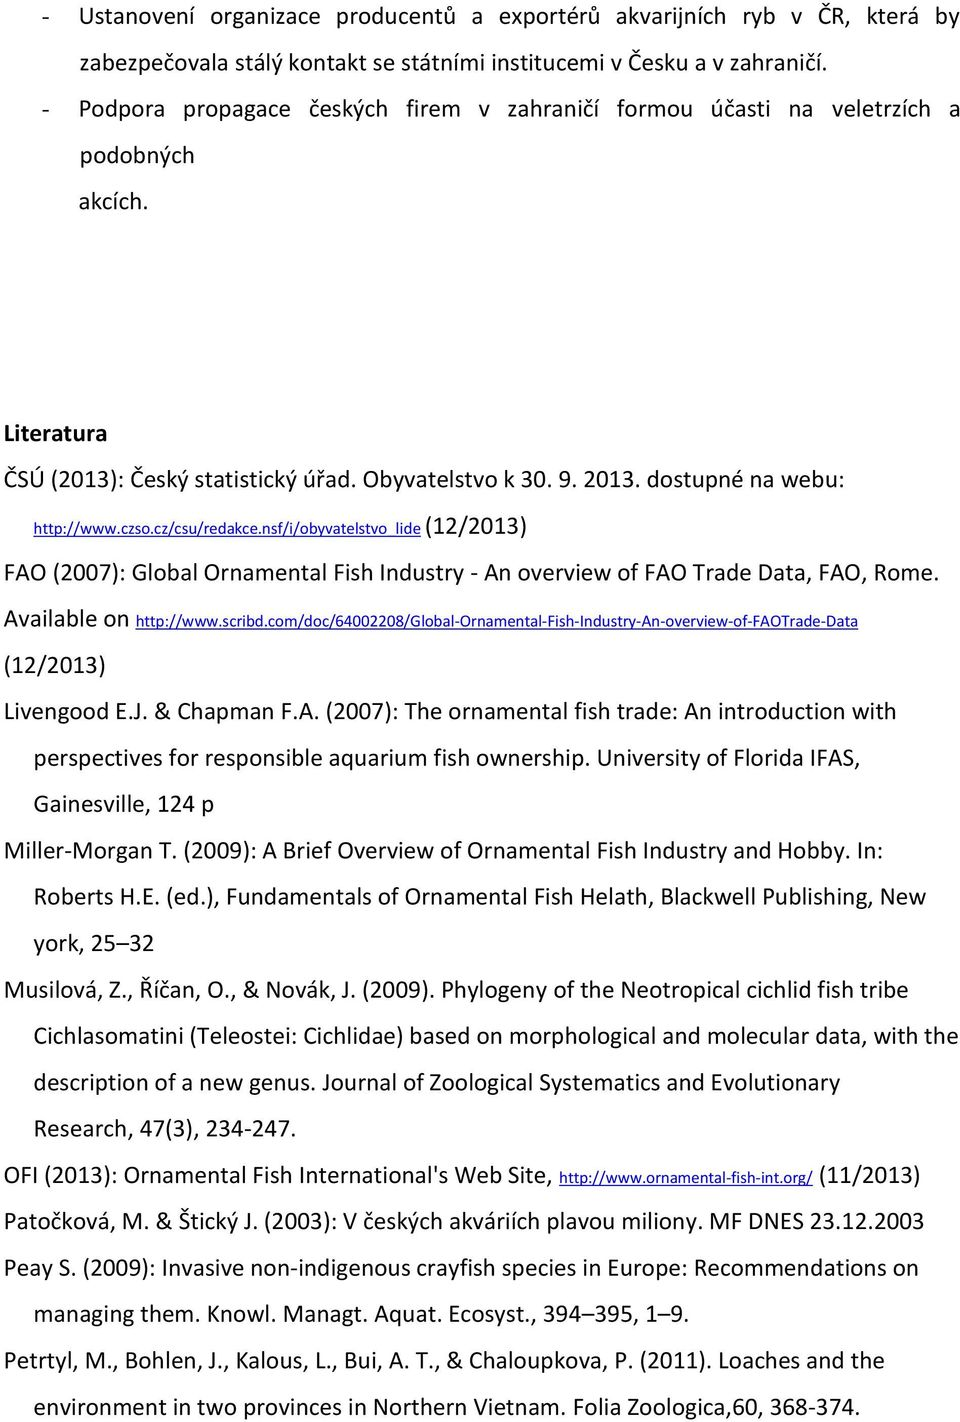 czso.cz/csu/redakce.nsf/i/obyvatelstvo_lide (12/2013) FAO (2007): Global Ornamental Fish Industry An overview of FAO Trade Data, FAO, Rome. Available on http://www.scribd.